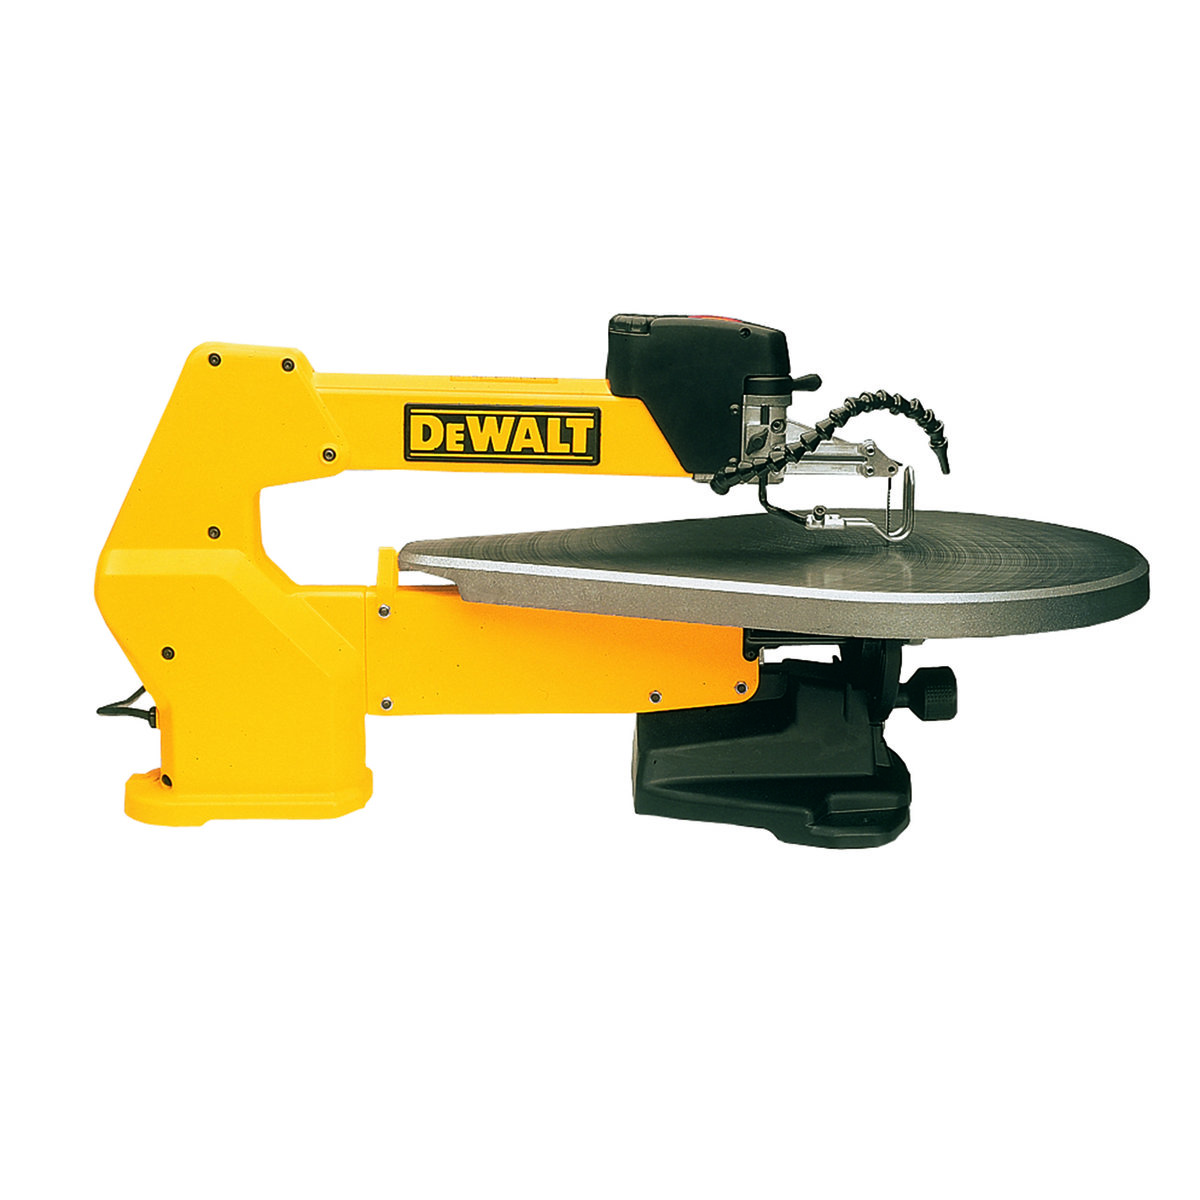 Scroll saw model dw788 view a larger image of scroll saw model dw788 greentooth Images